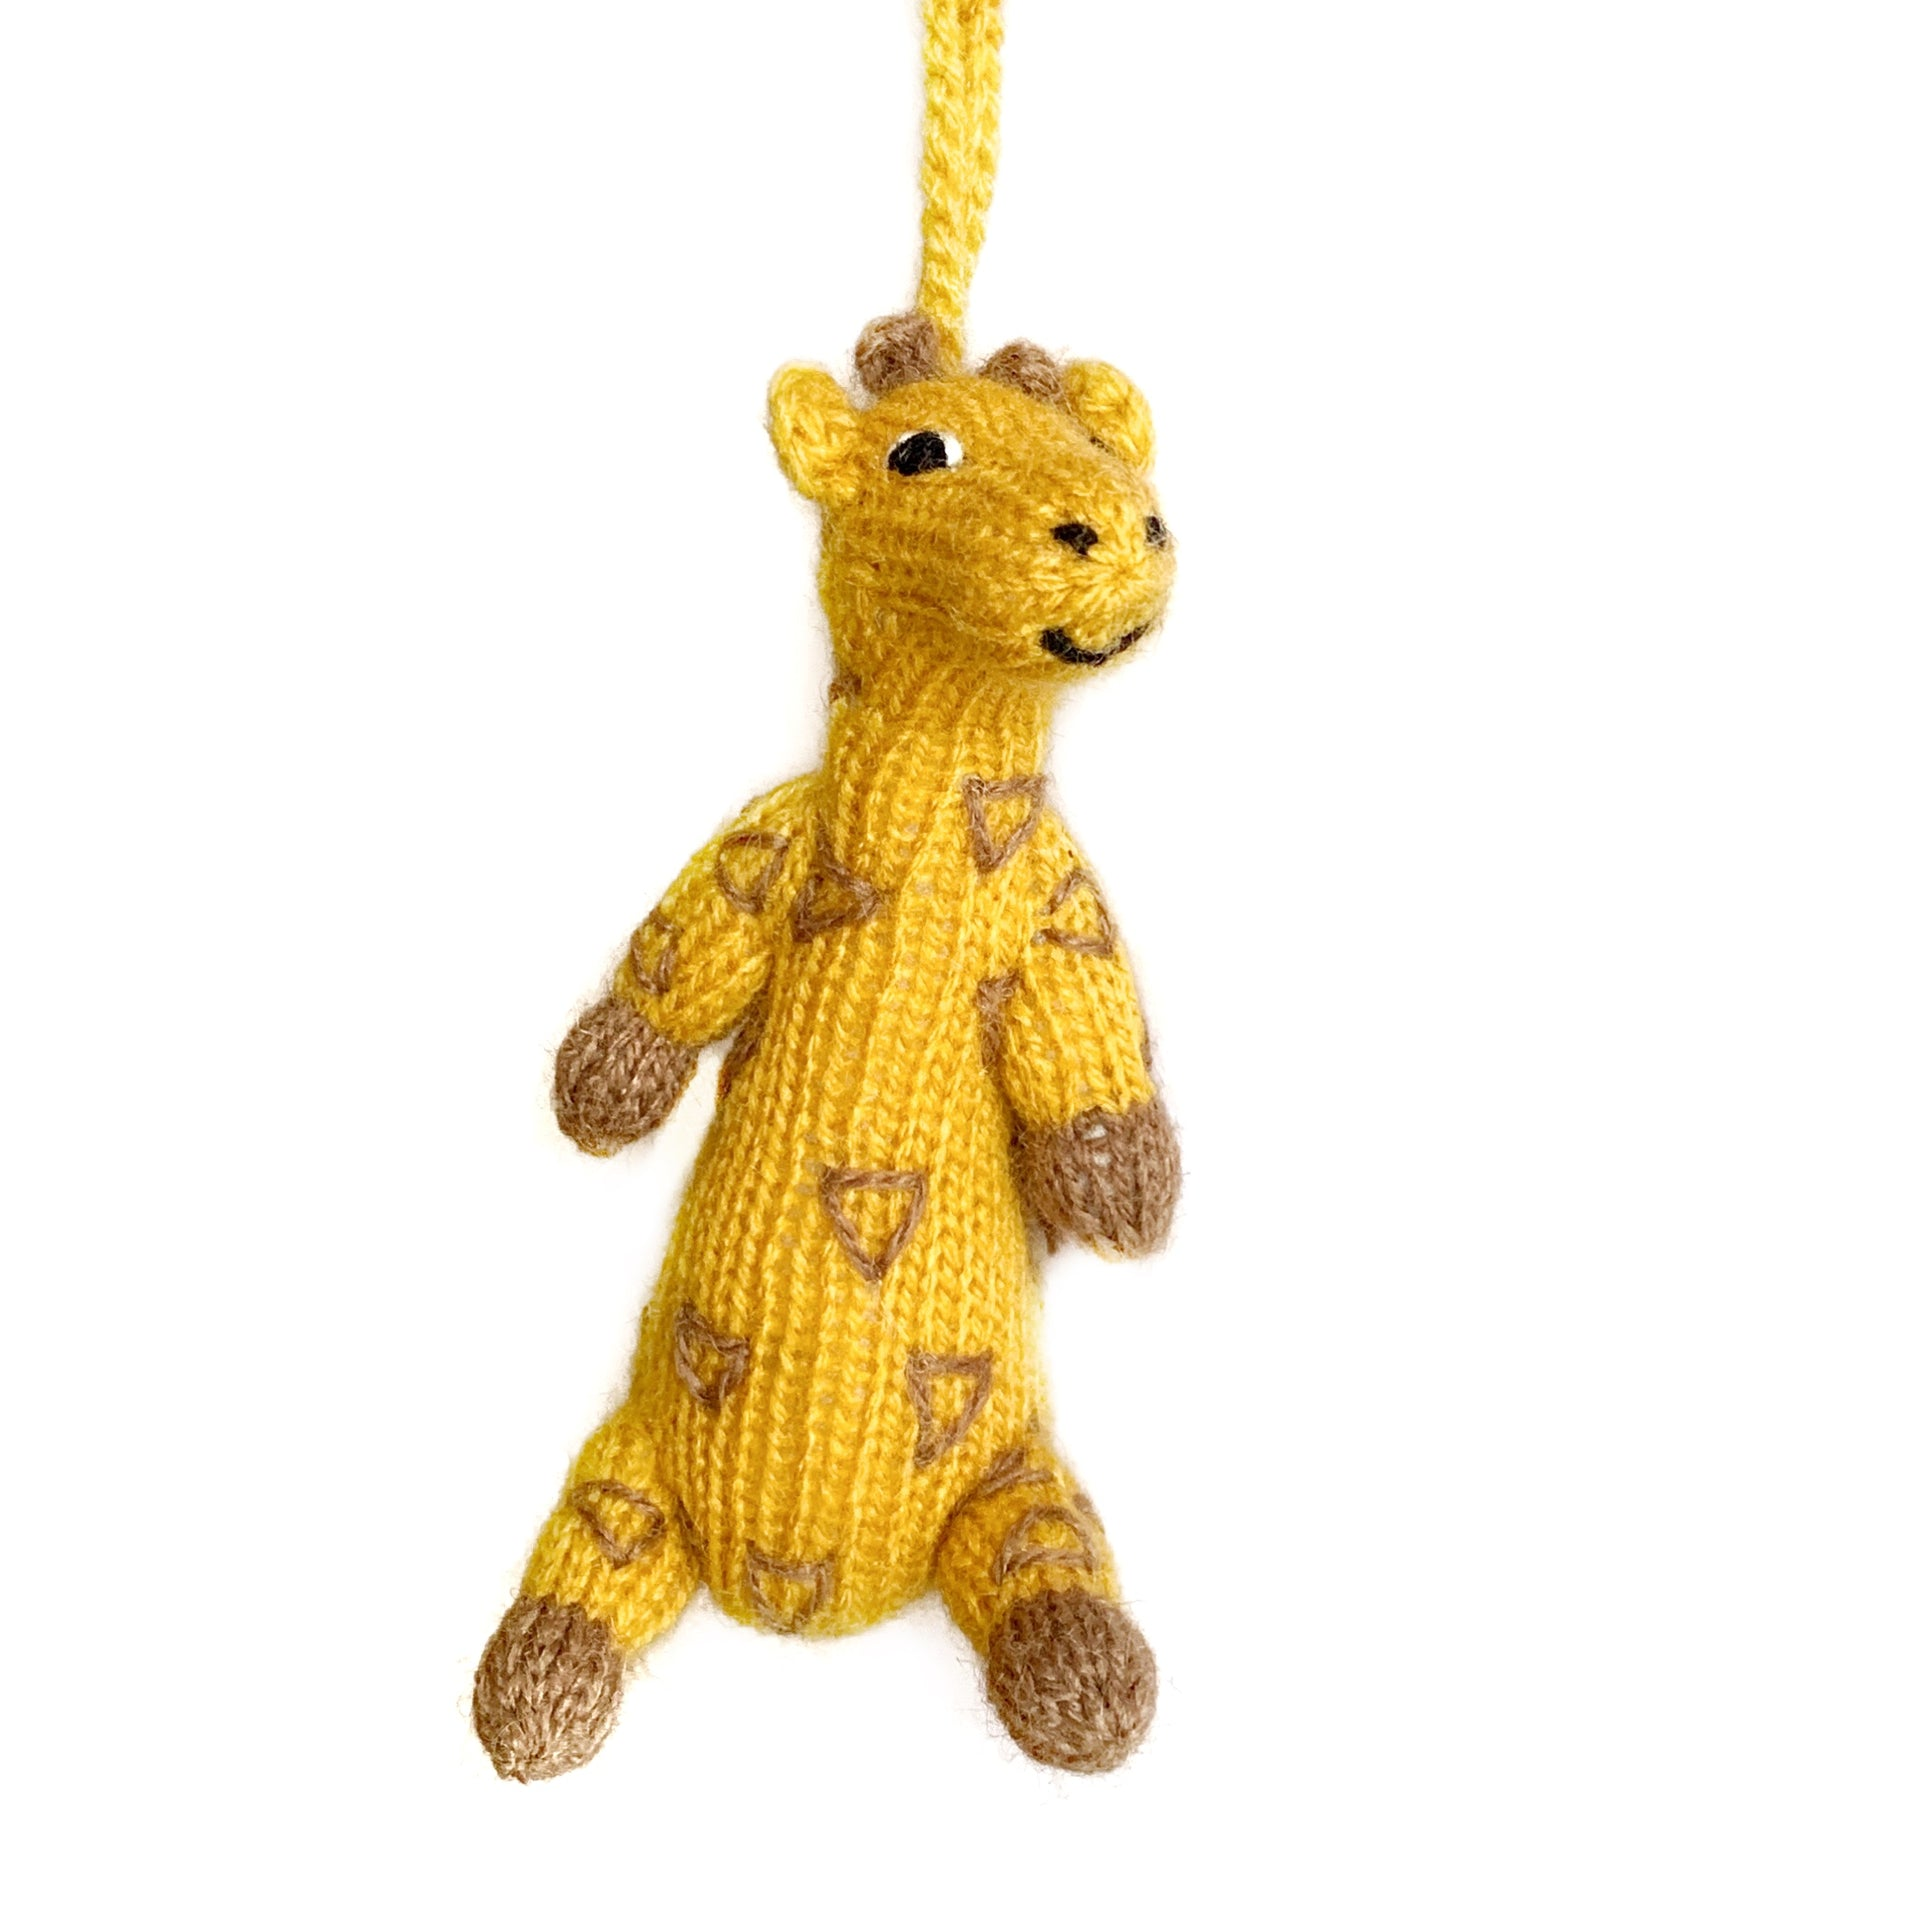 Knit Giraffe Christmas Ornament Handmade